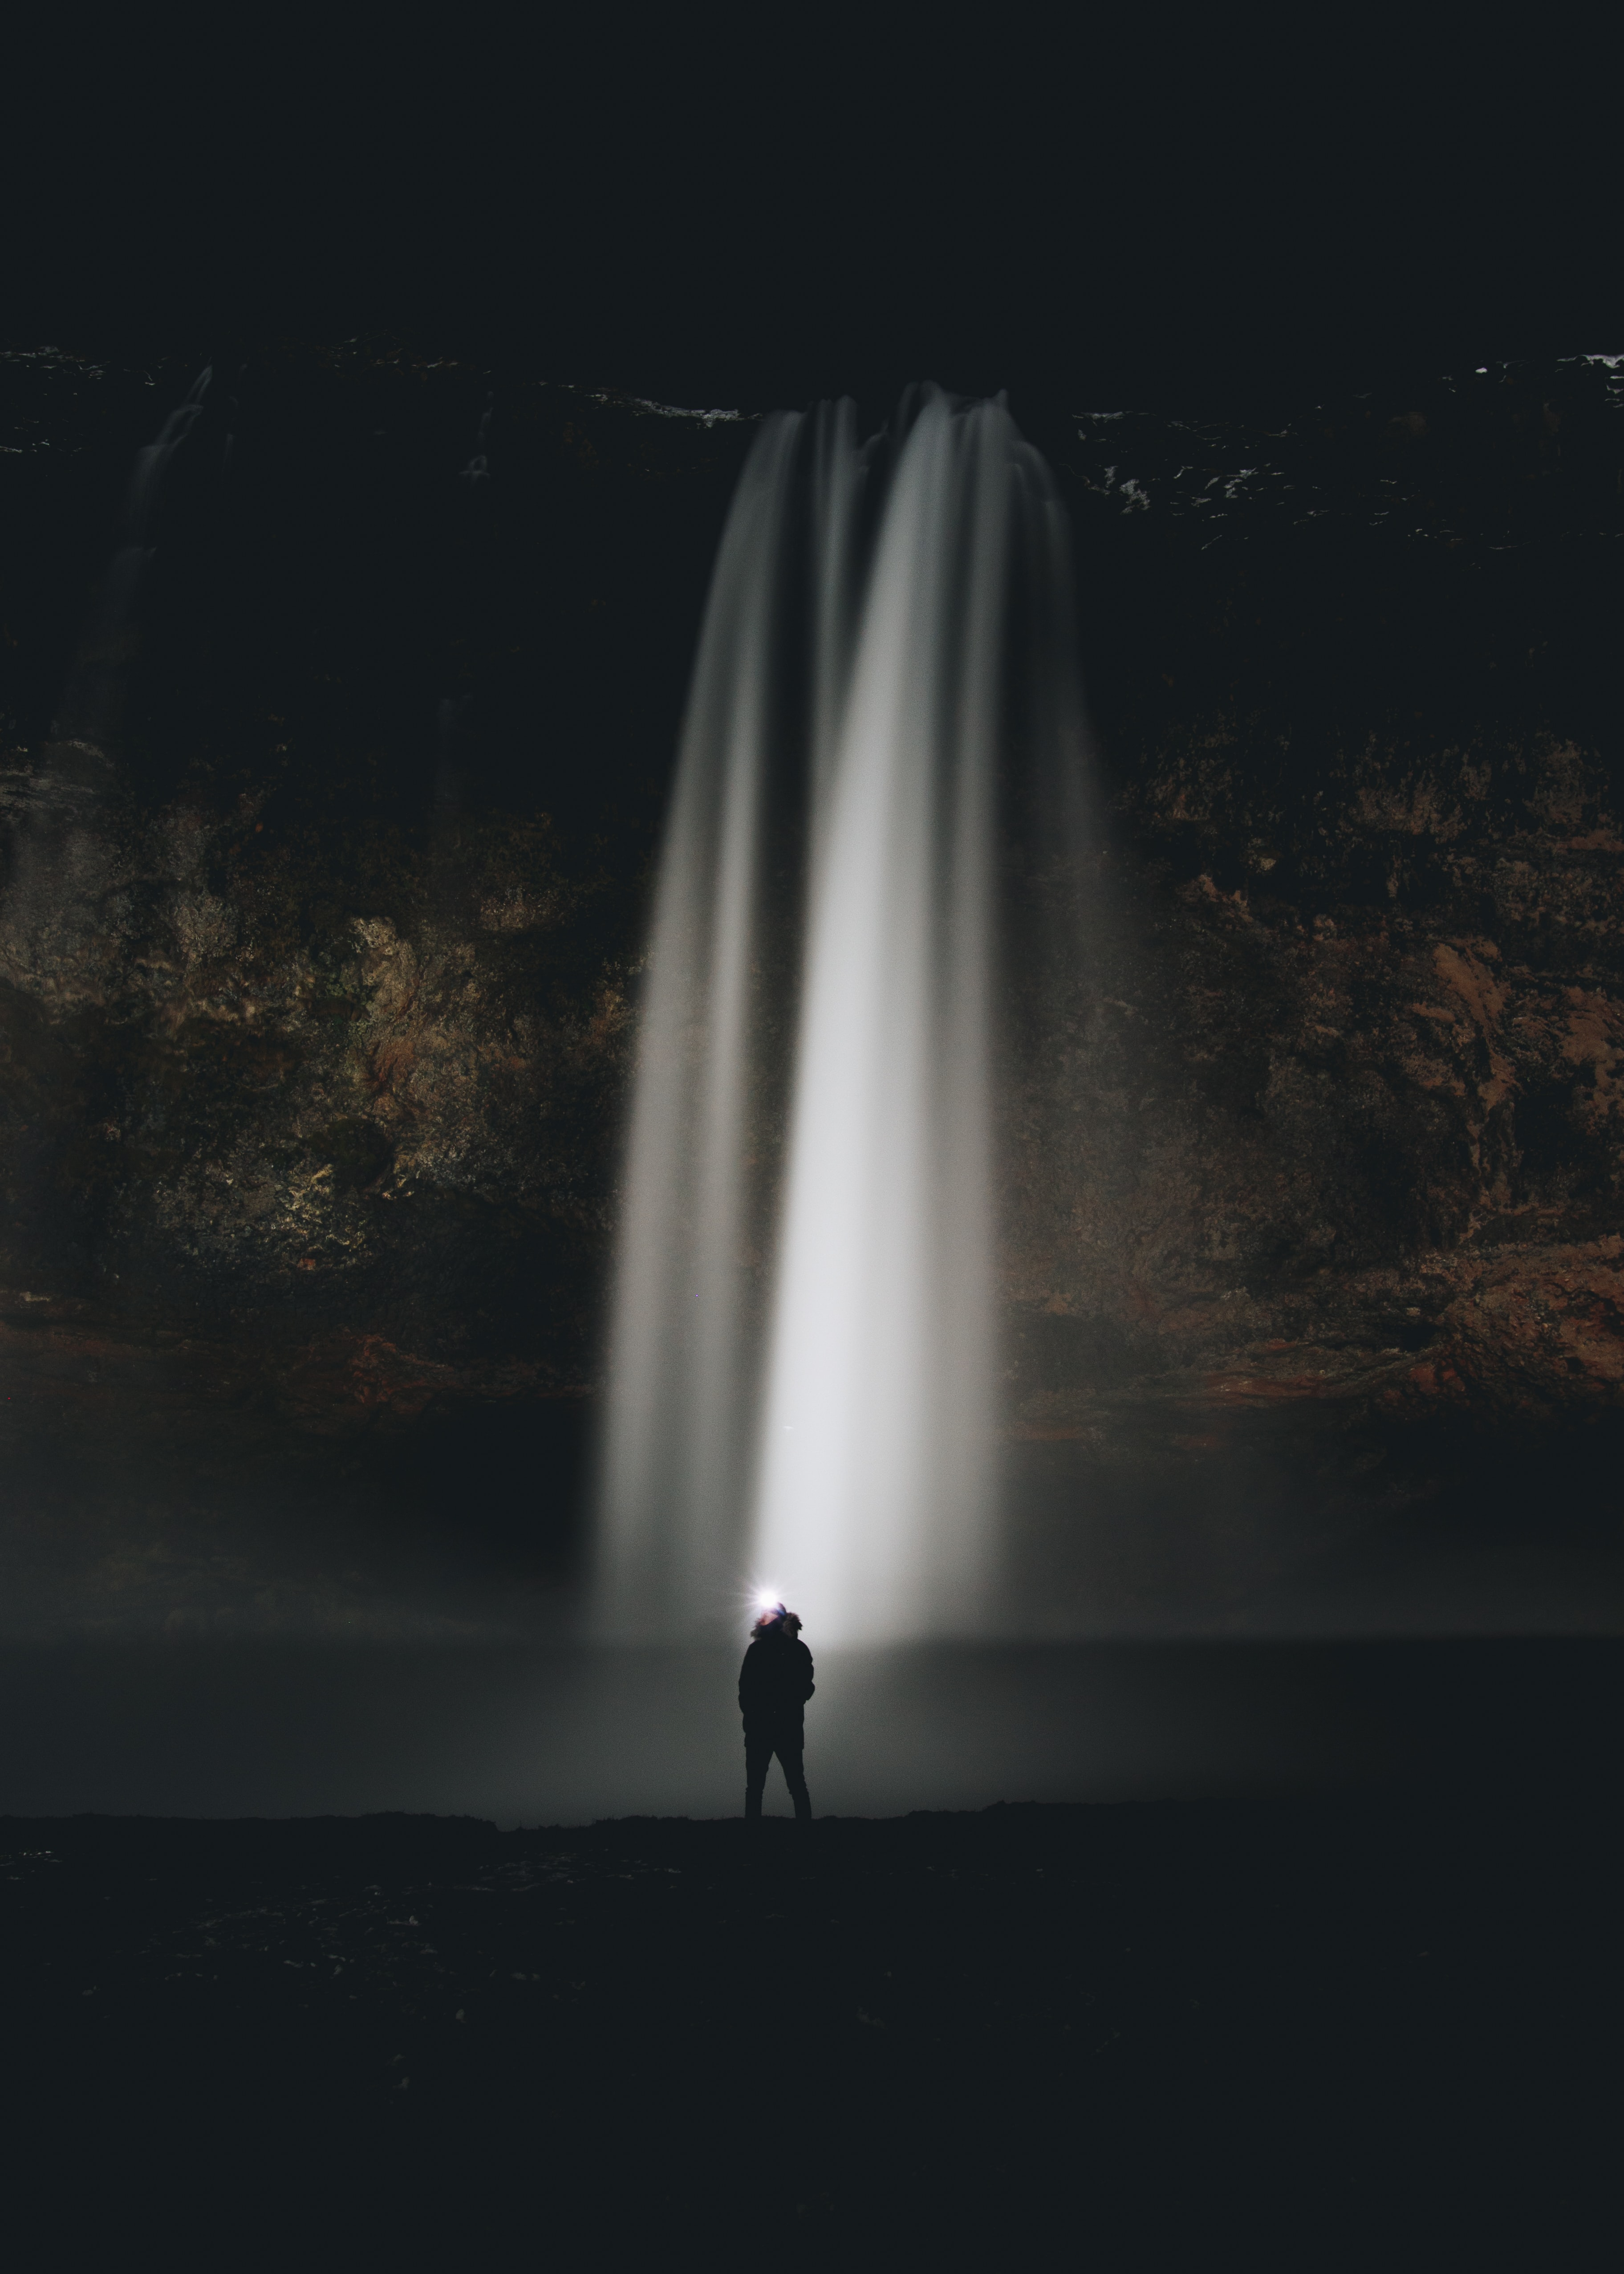 man standing in front of waterfalls during nighttime